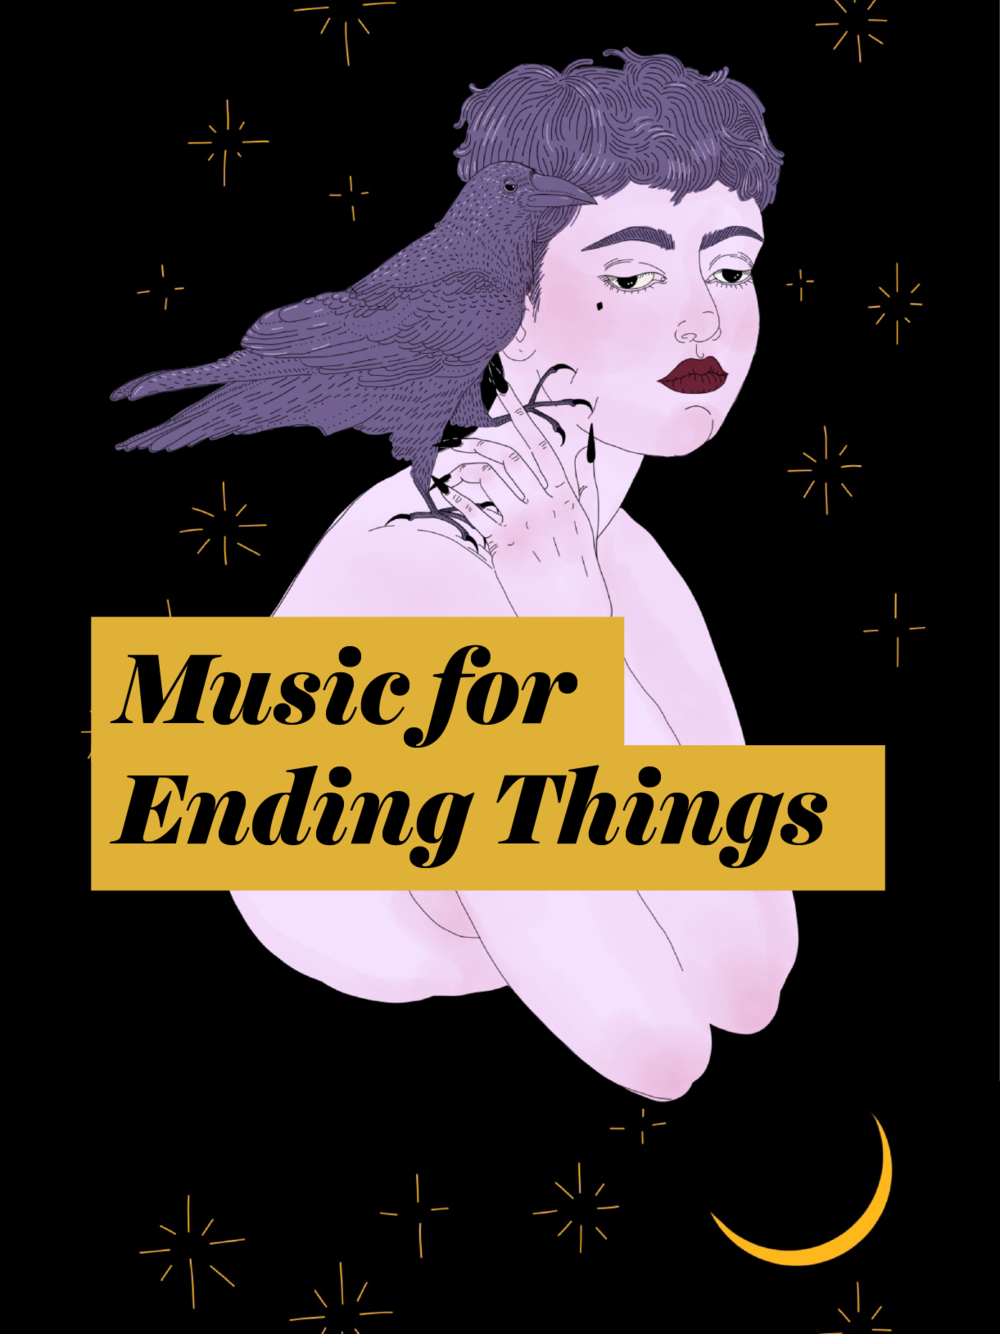 Artboard 1music for ending things.png